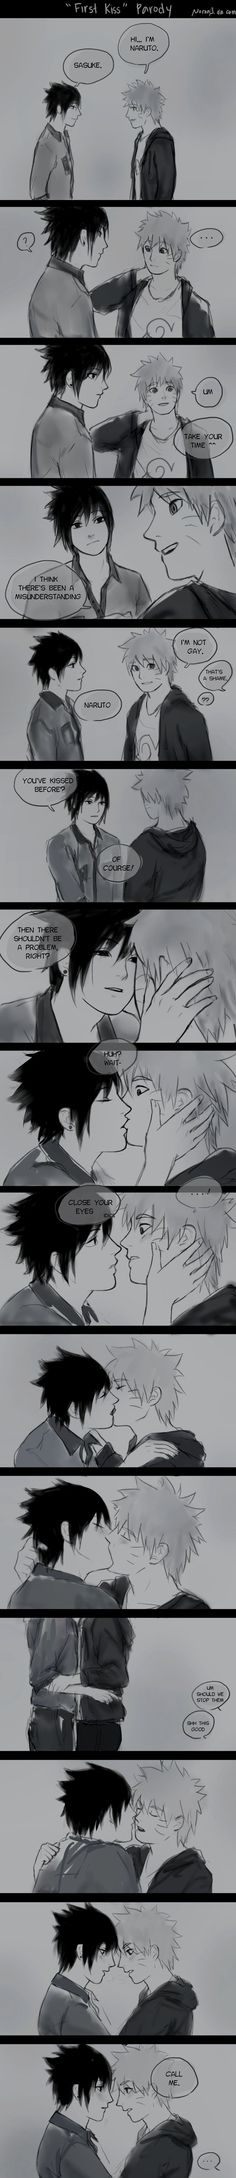 First Kiss by NoranB.deviantart.com on @DeviantArt In which Sasuke is hella gay and introduces Naruto to a whole new world :3